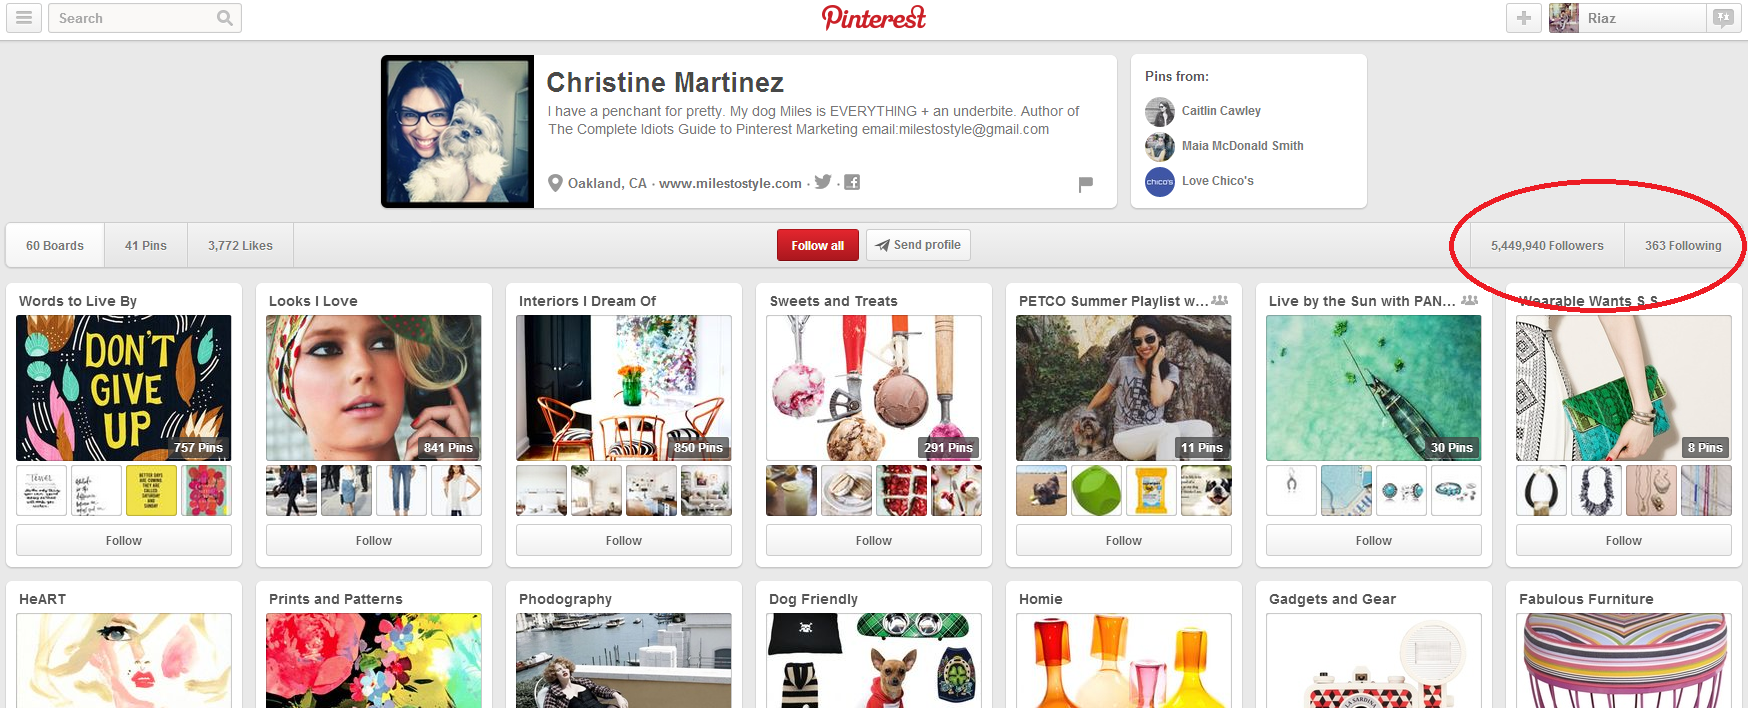 Christine Martinez's Pinterest account